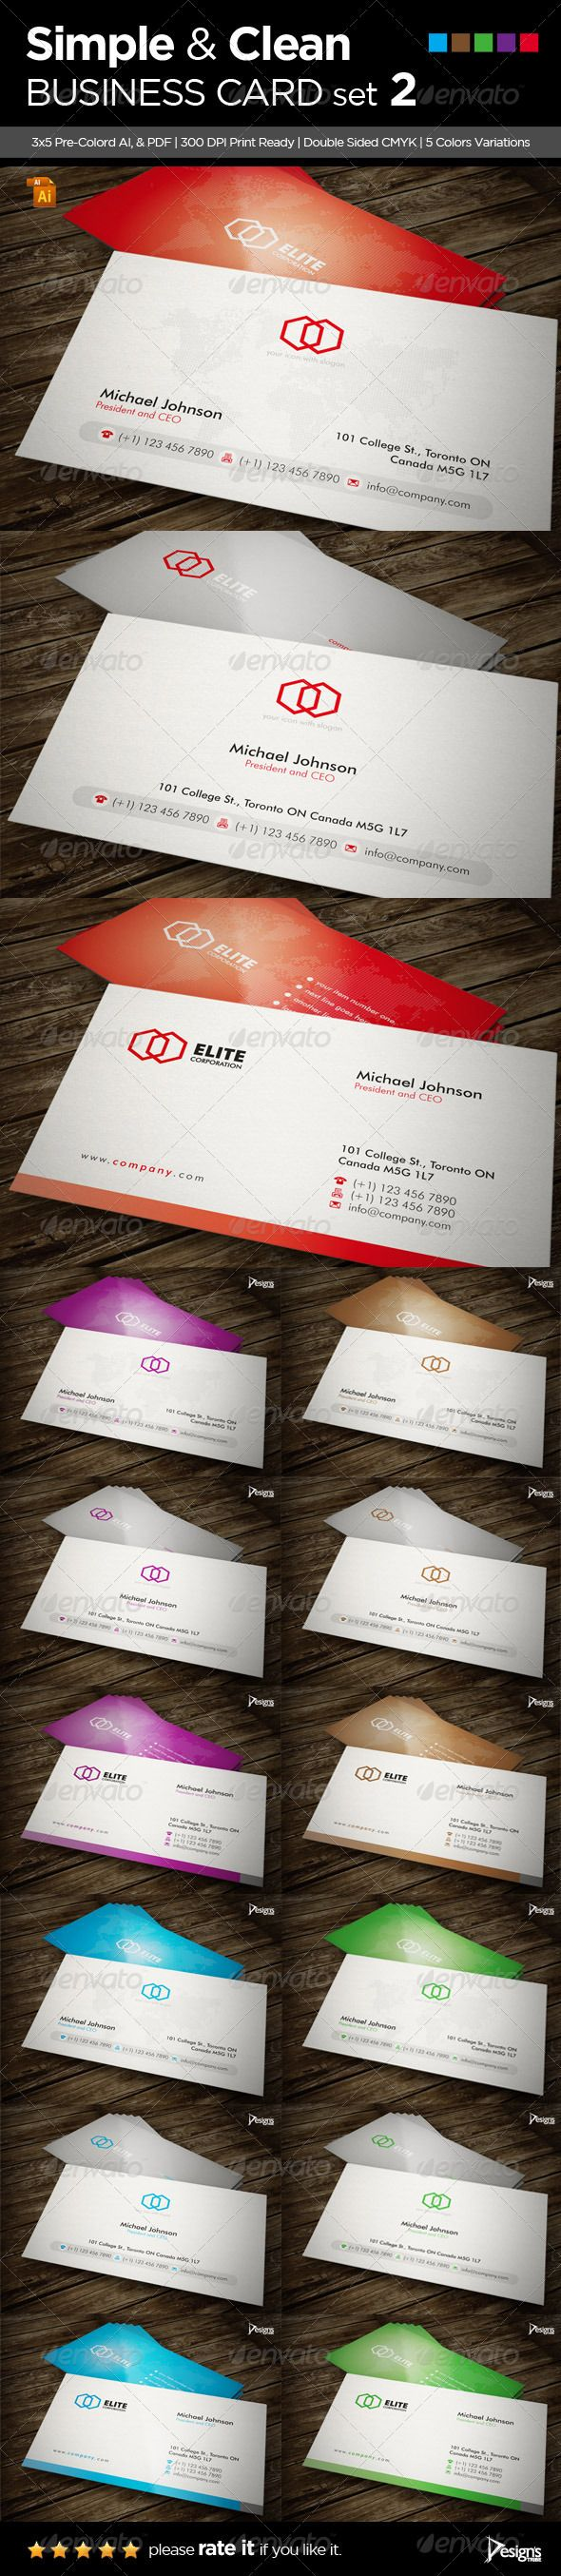 Best 25+ Cleaning business cards ideas on Pinterest | Visit cards ...